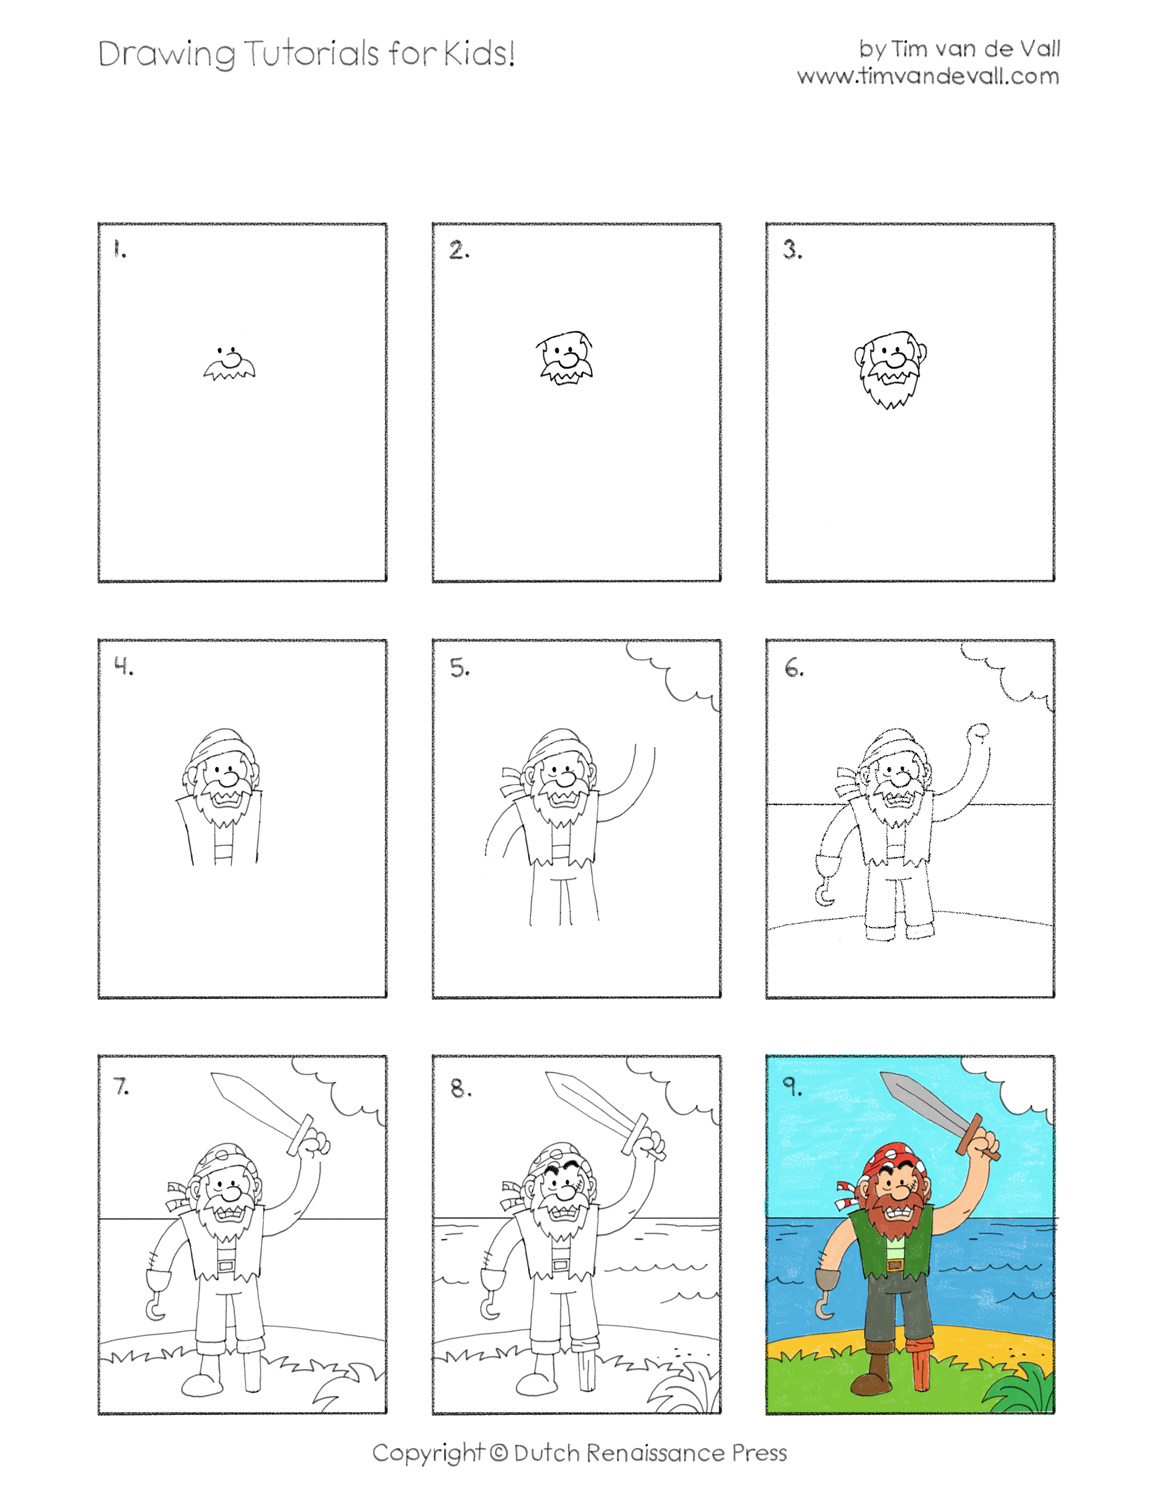 Easy Drawing Activities For Toddlers 02 Boat On Water Kids Art